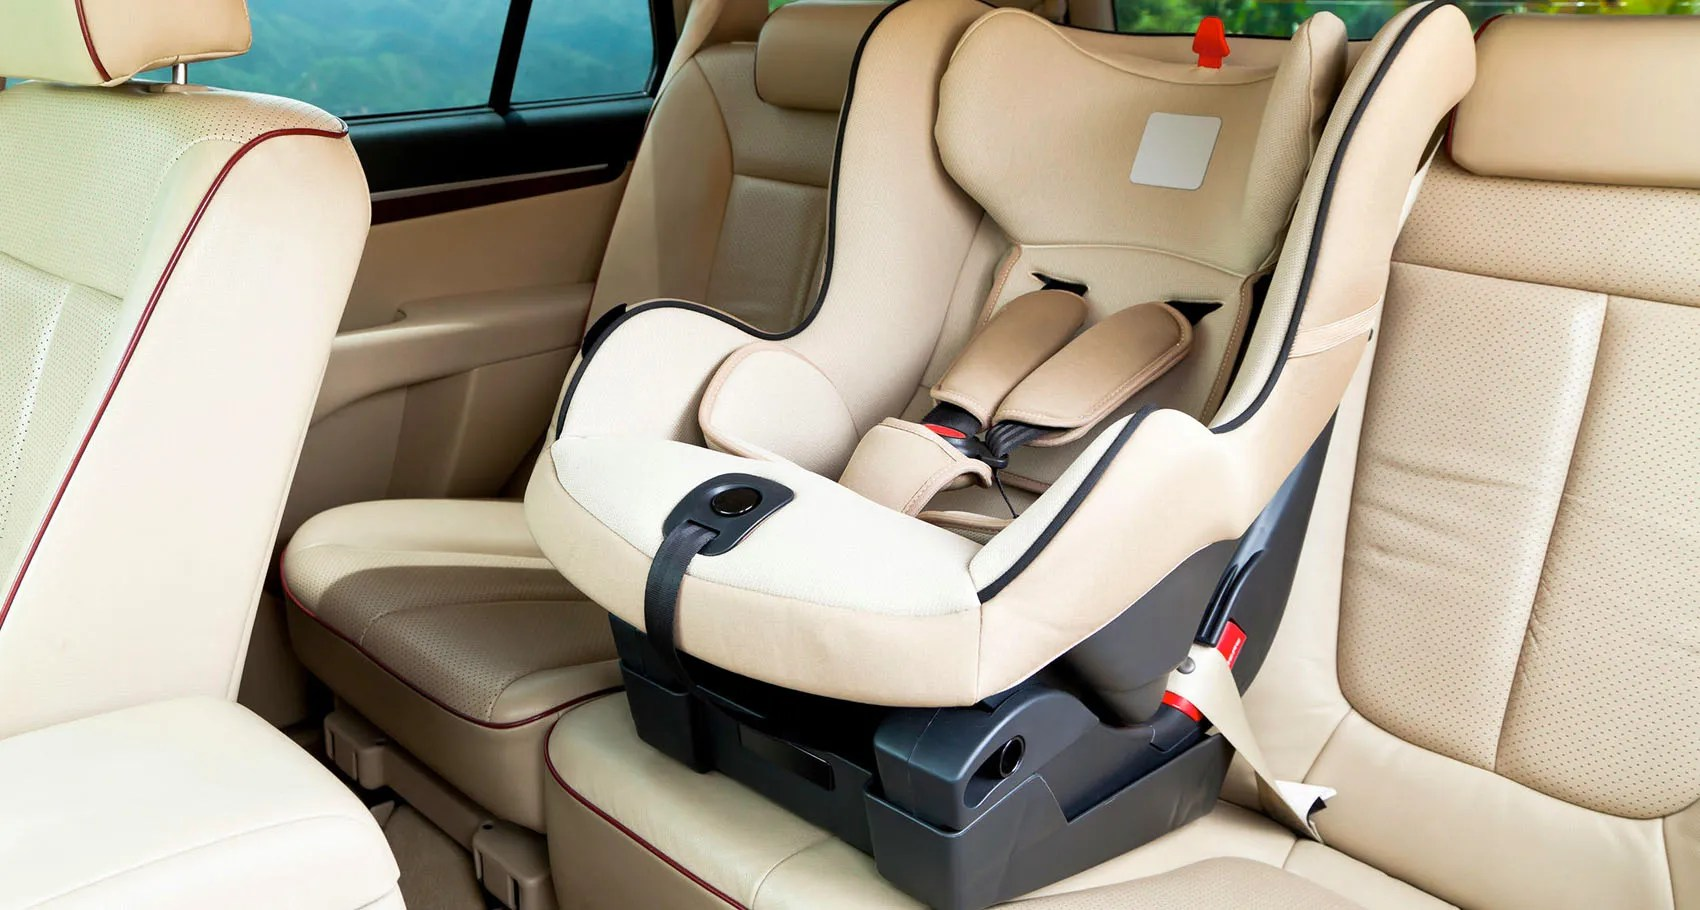 Child Car Seat Jacket Cold Weather Reminder For Car Seat Safety No Jackets